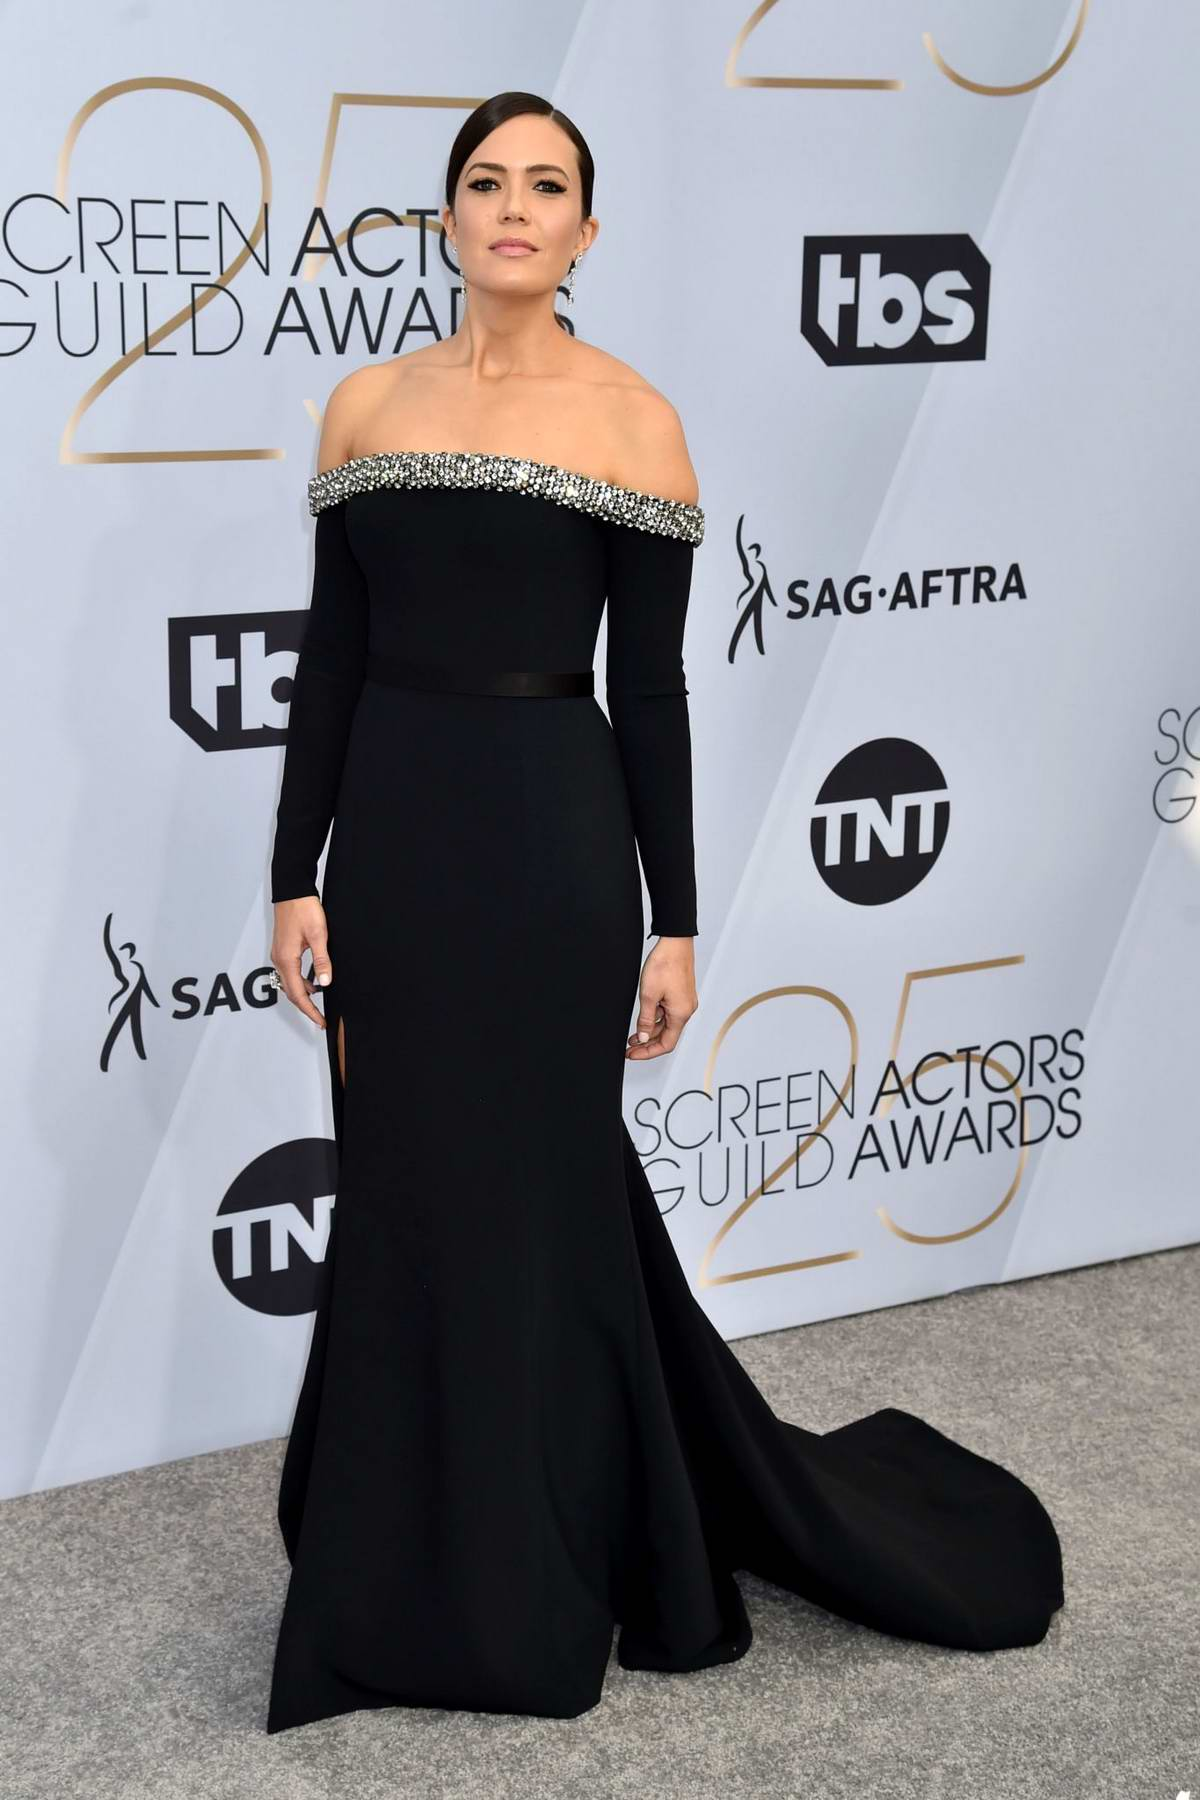 Mandy Moore attends the 25th Annual Screen Actors Guild Awards (SAG 2019) at the Shrine Auditorium in Los Angeles